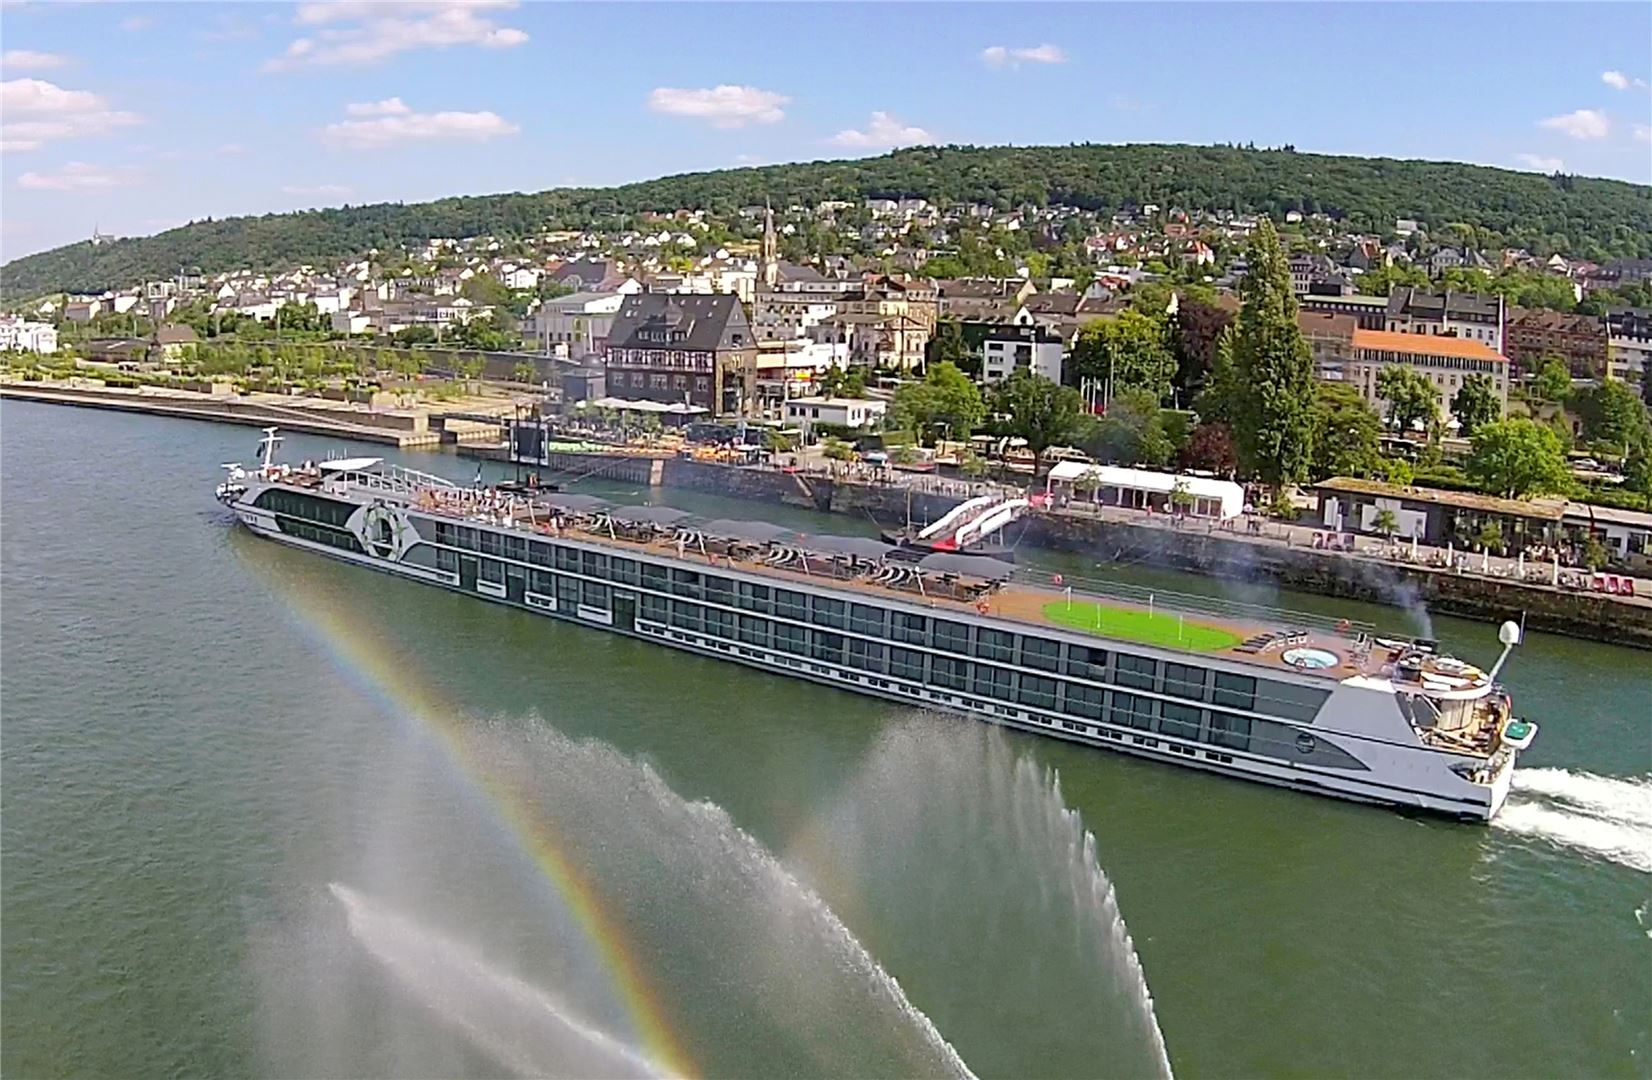 Tauck Expands its River Cruise Product with More Family Itineraries